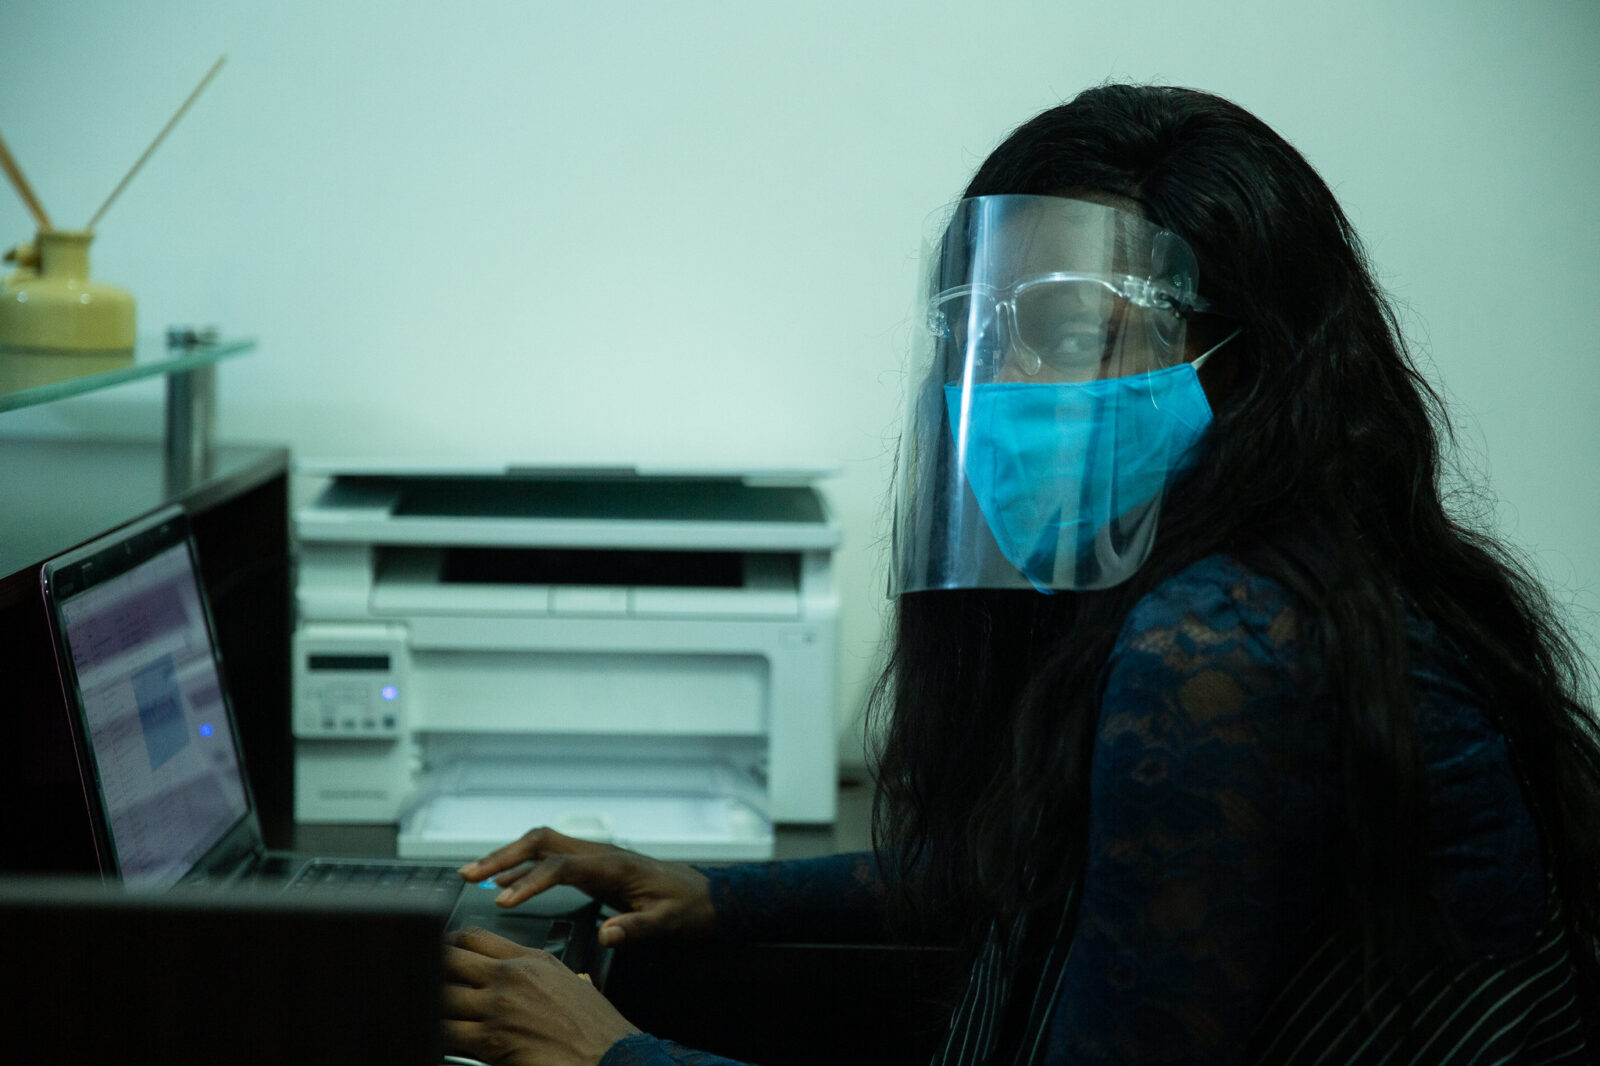 Adenike Onatoye, an Administrative head, works in the office with her face mask and face shield on.